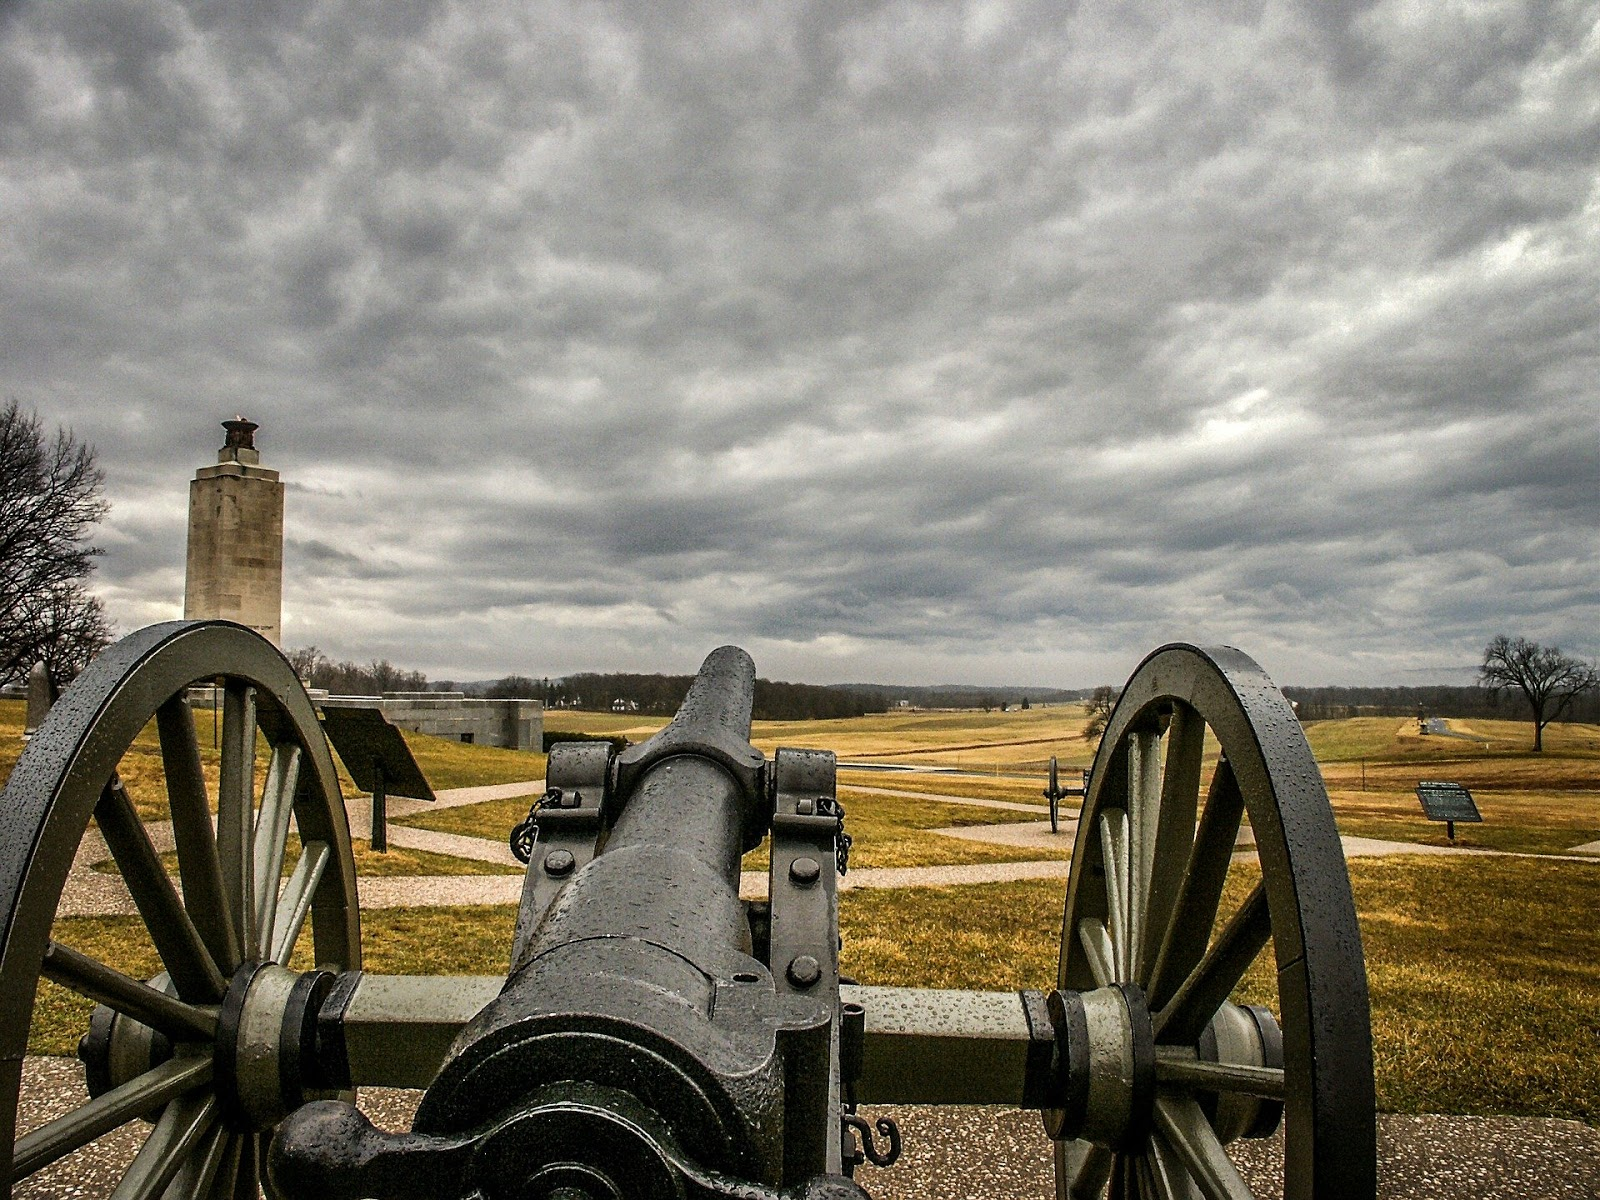 a civil war cannon is about to be shot over an empty field to illustrate war movies that make history come alive